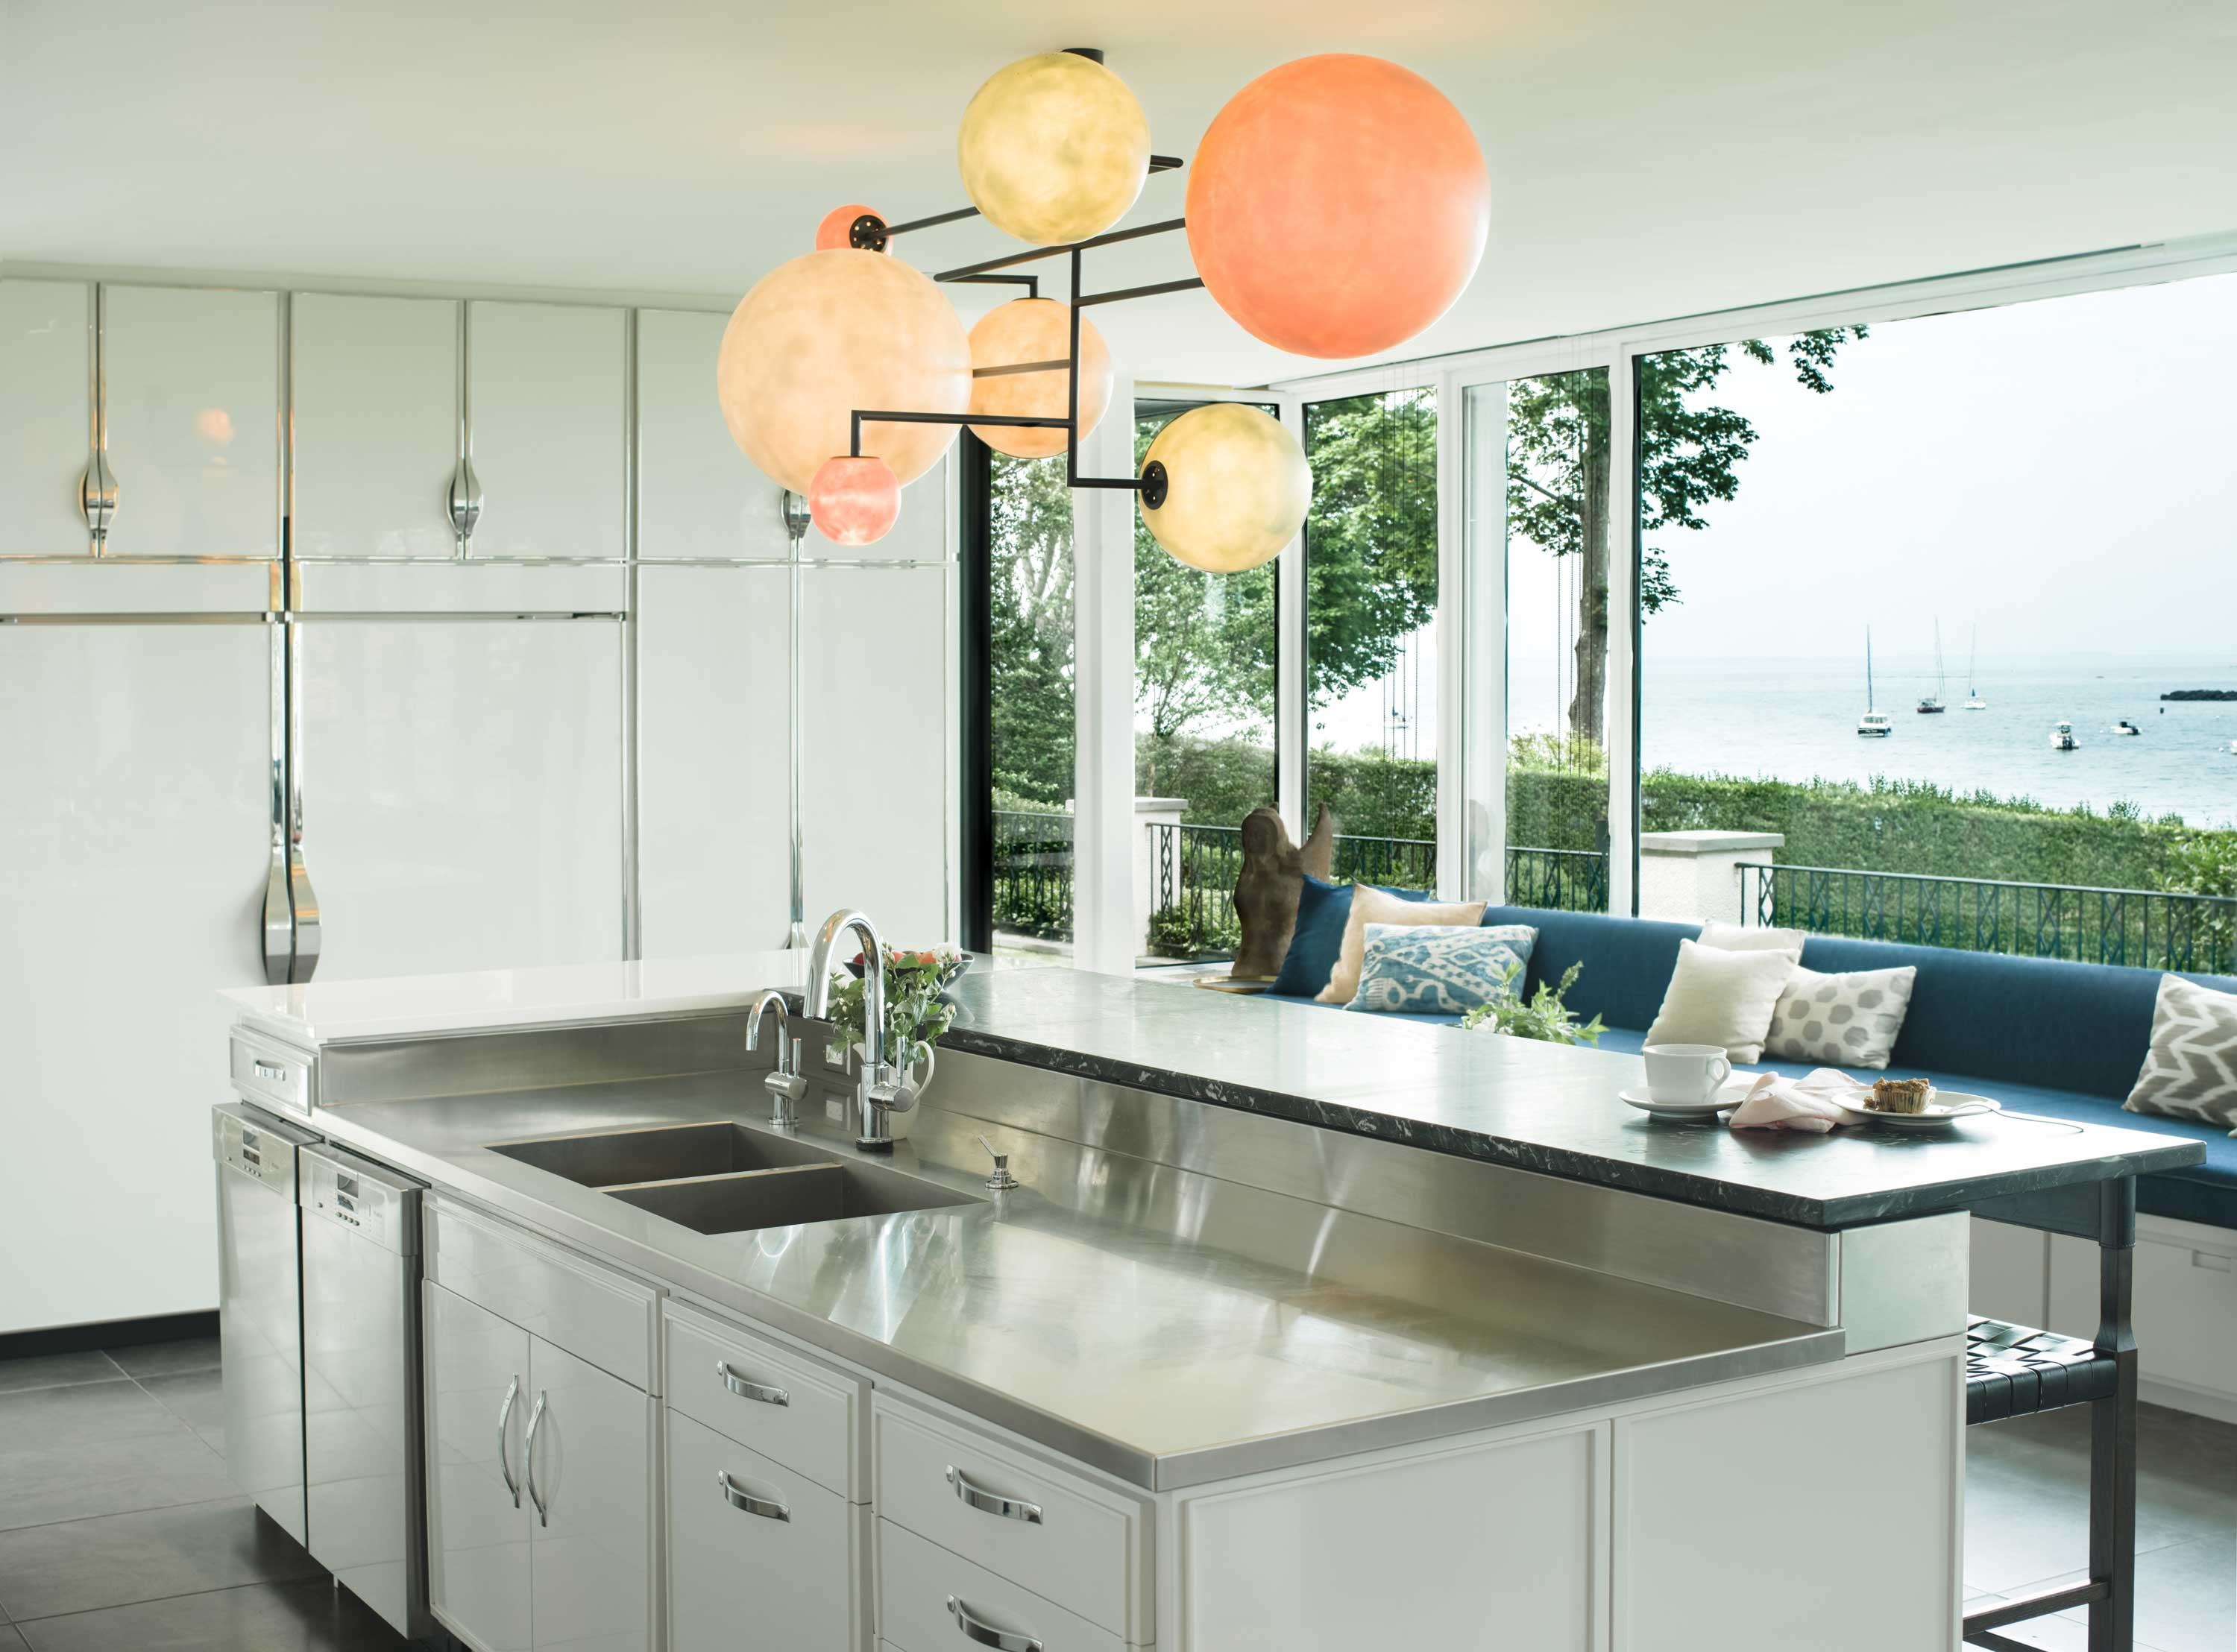 Artisan light fixtures have been beautifully placed throughout the interior; this opalescent multi-light pendant adds a burst of color to the contemporary kitchen.